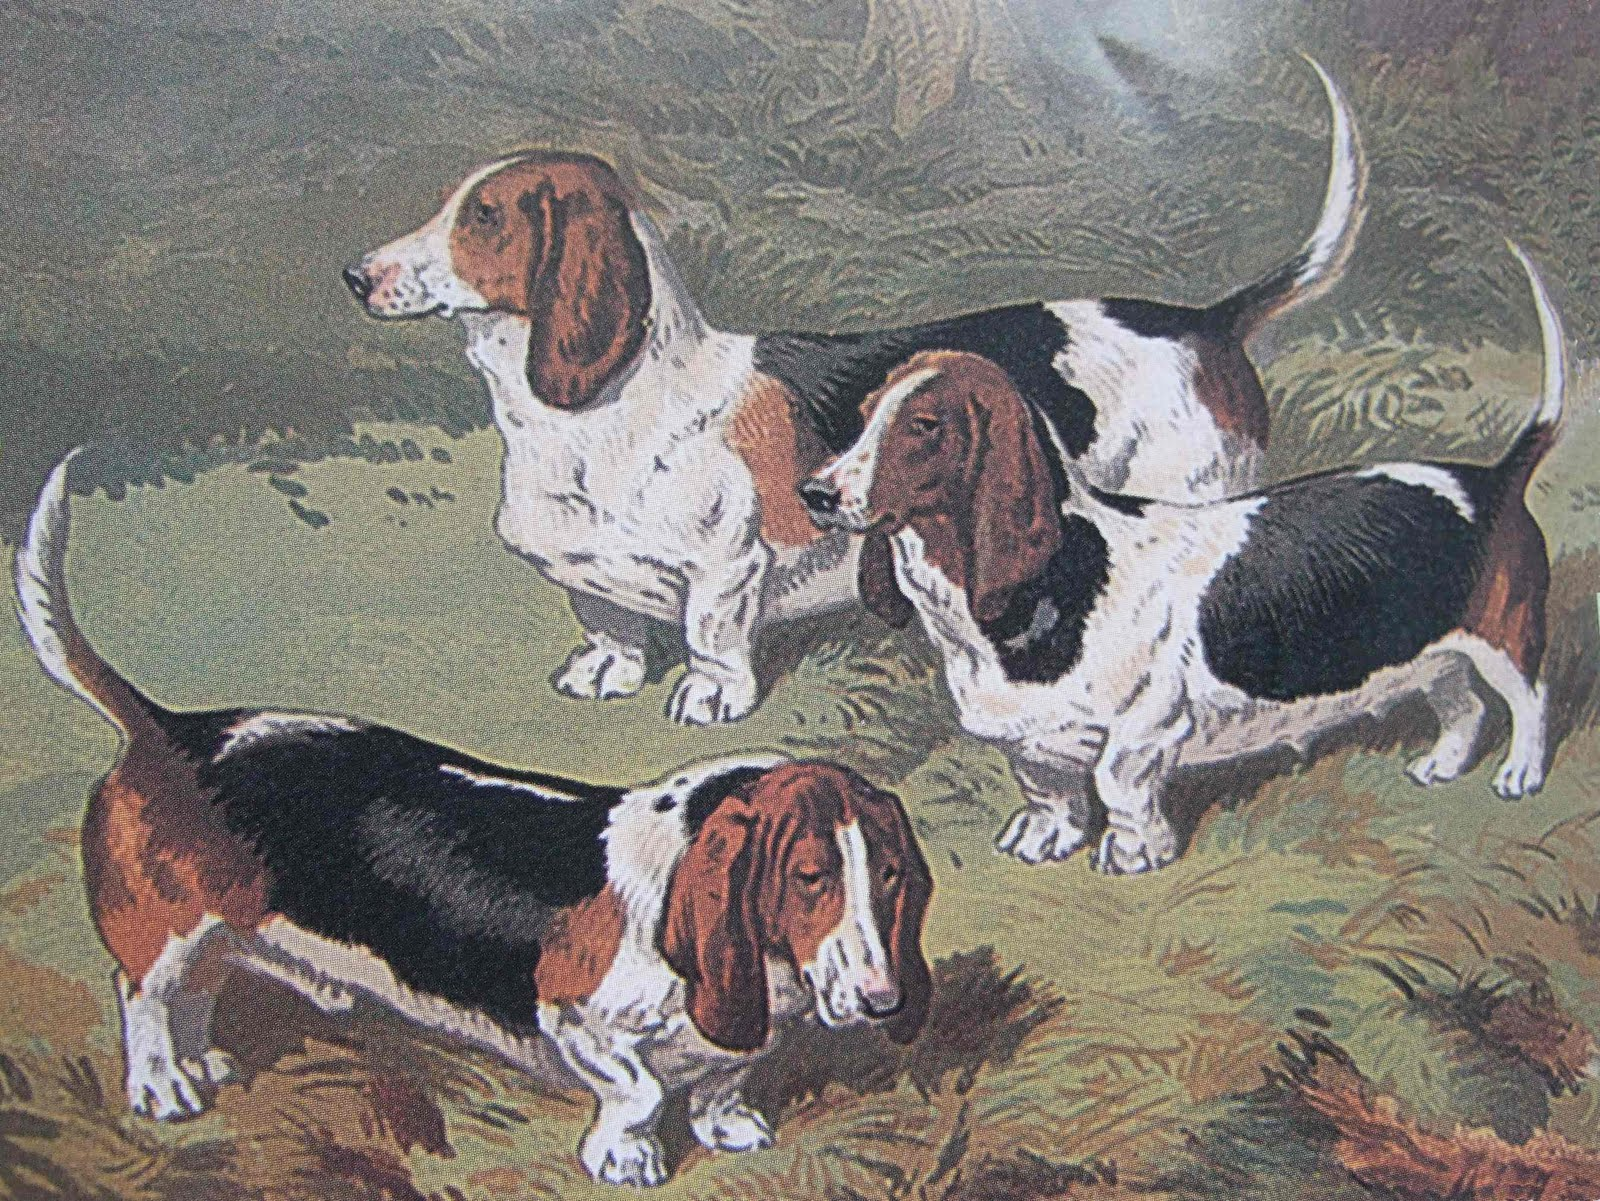 Pedigree Dogs Exposed - The Blog: Basset Hounds - a request